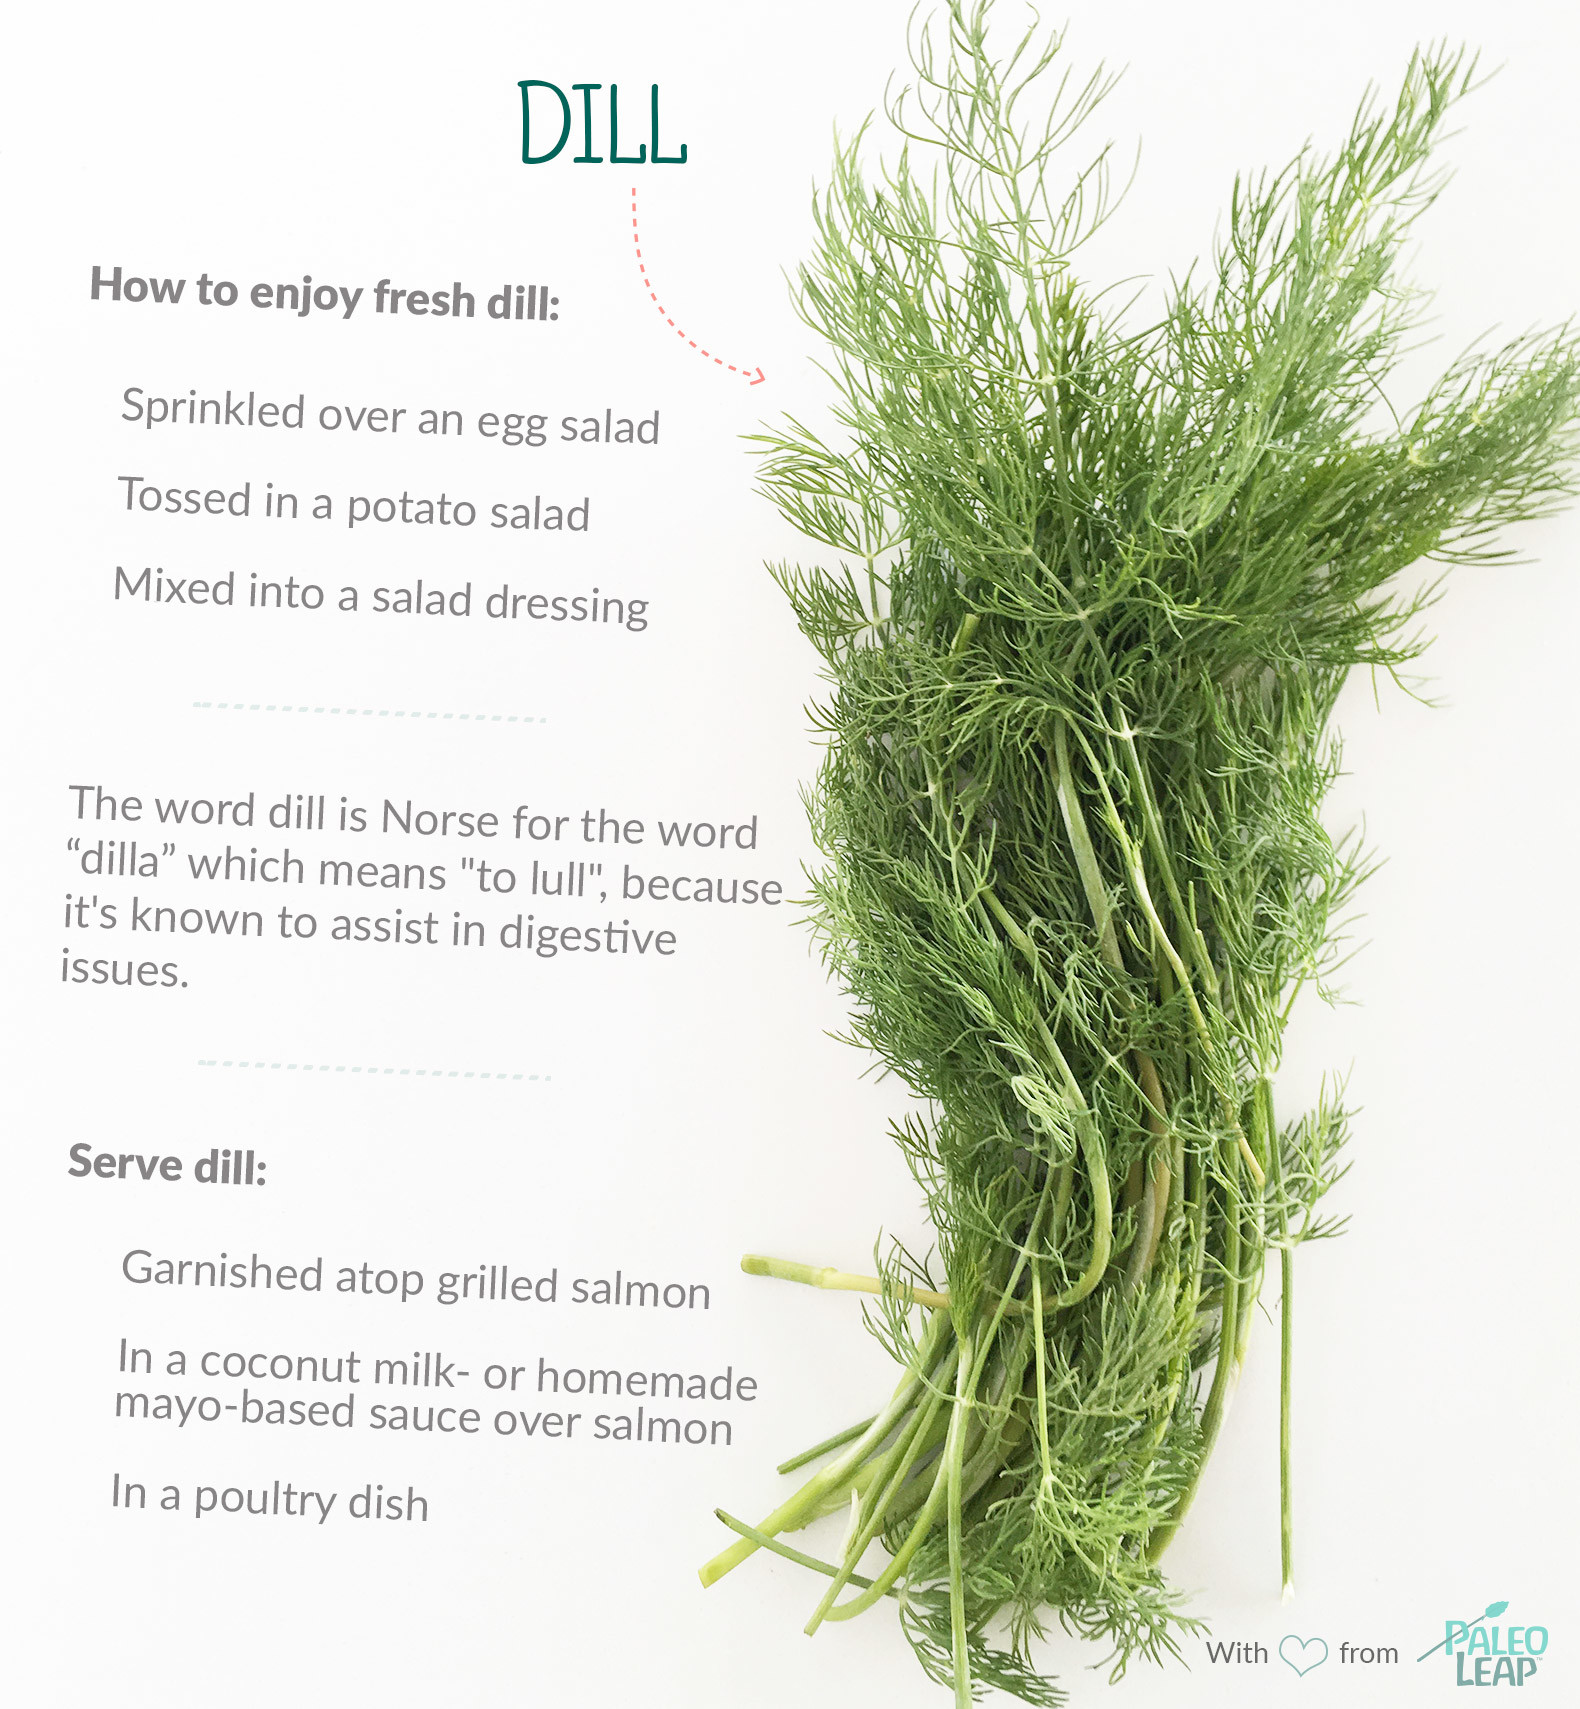 Dill highlights